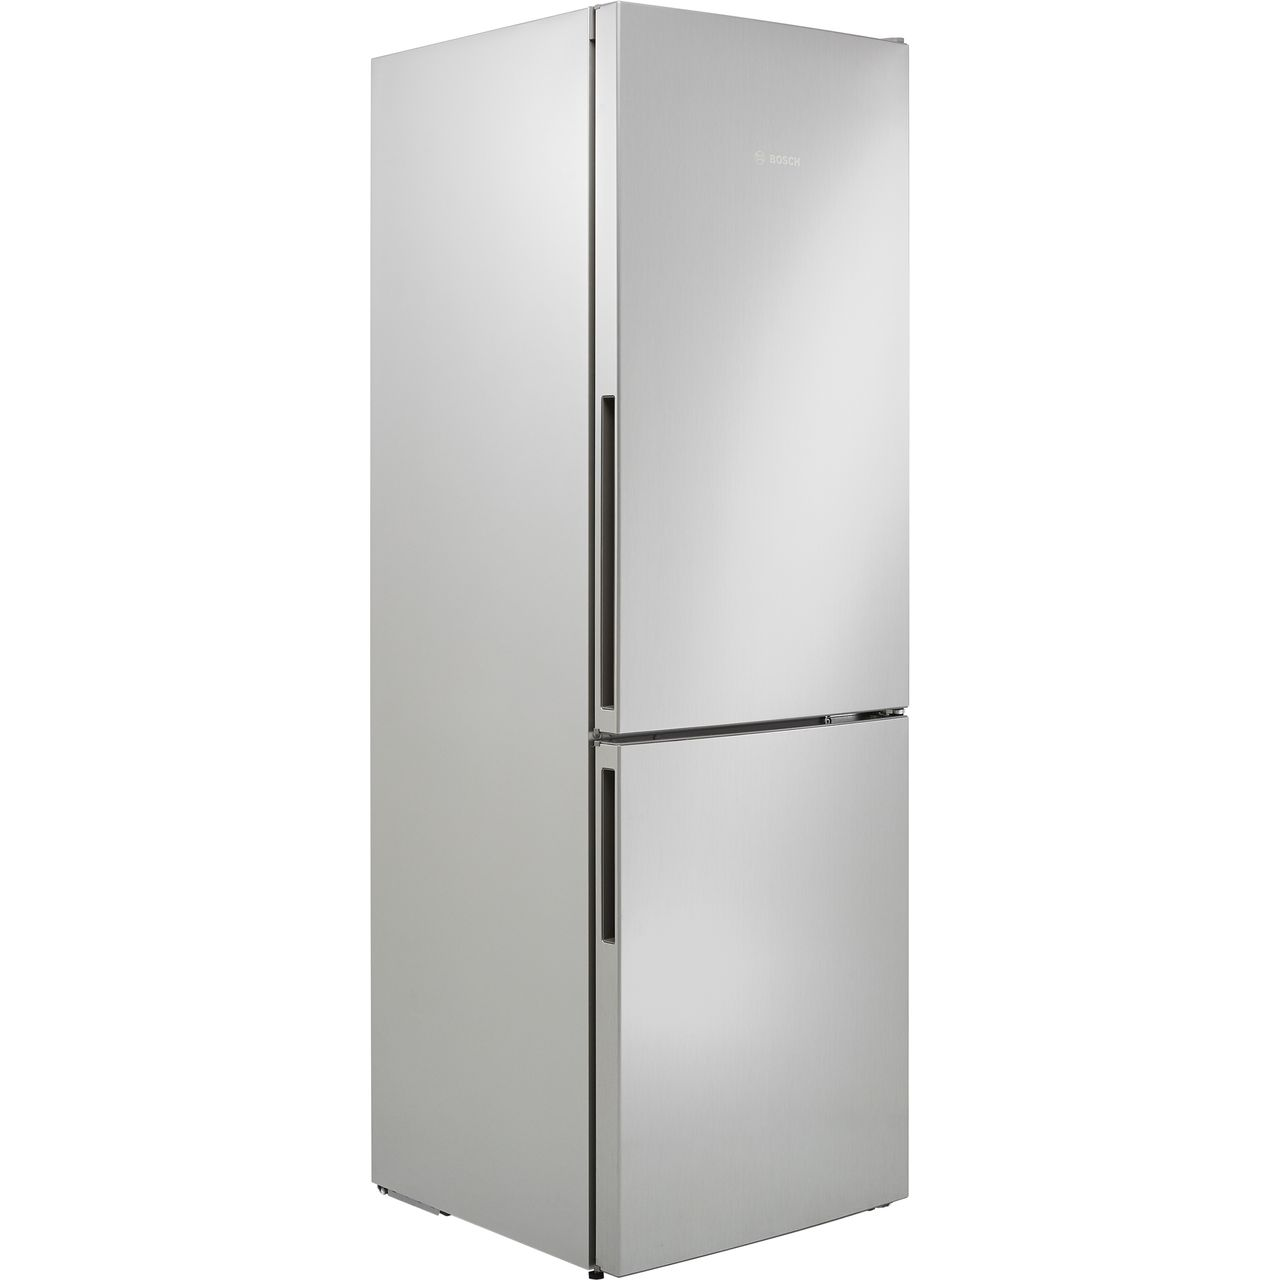 Bosch Serie 4 KGV36VL32G Free Standing Fridge Freezer in Stainless Steel Look